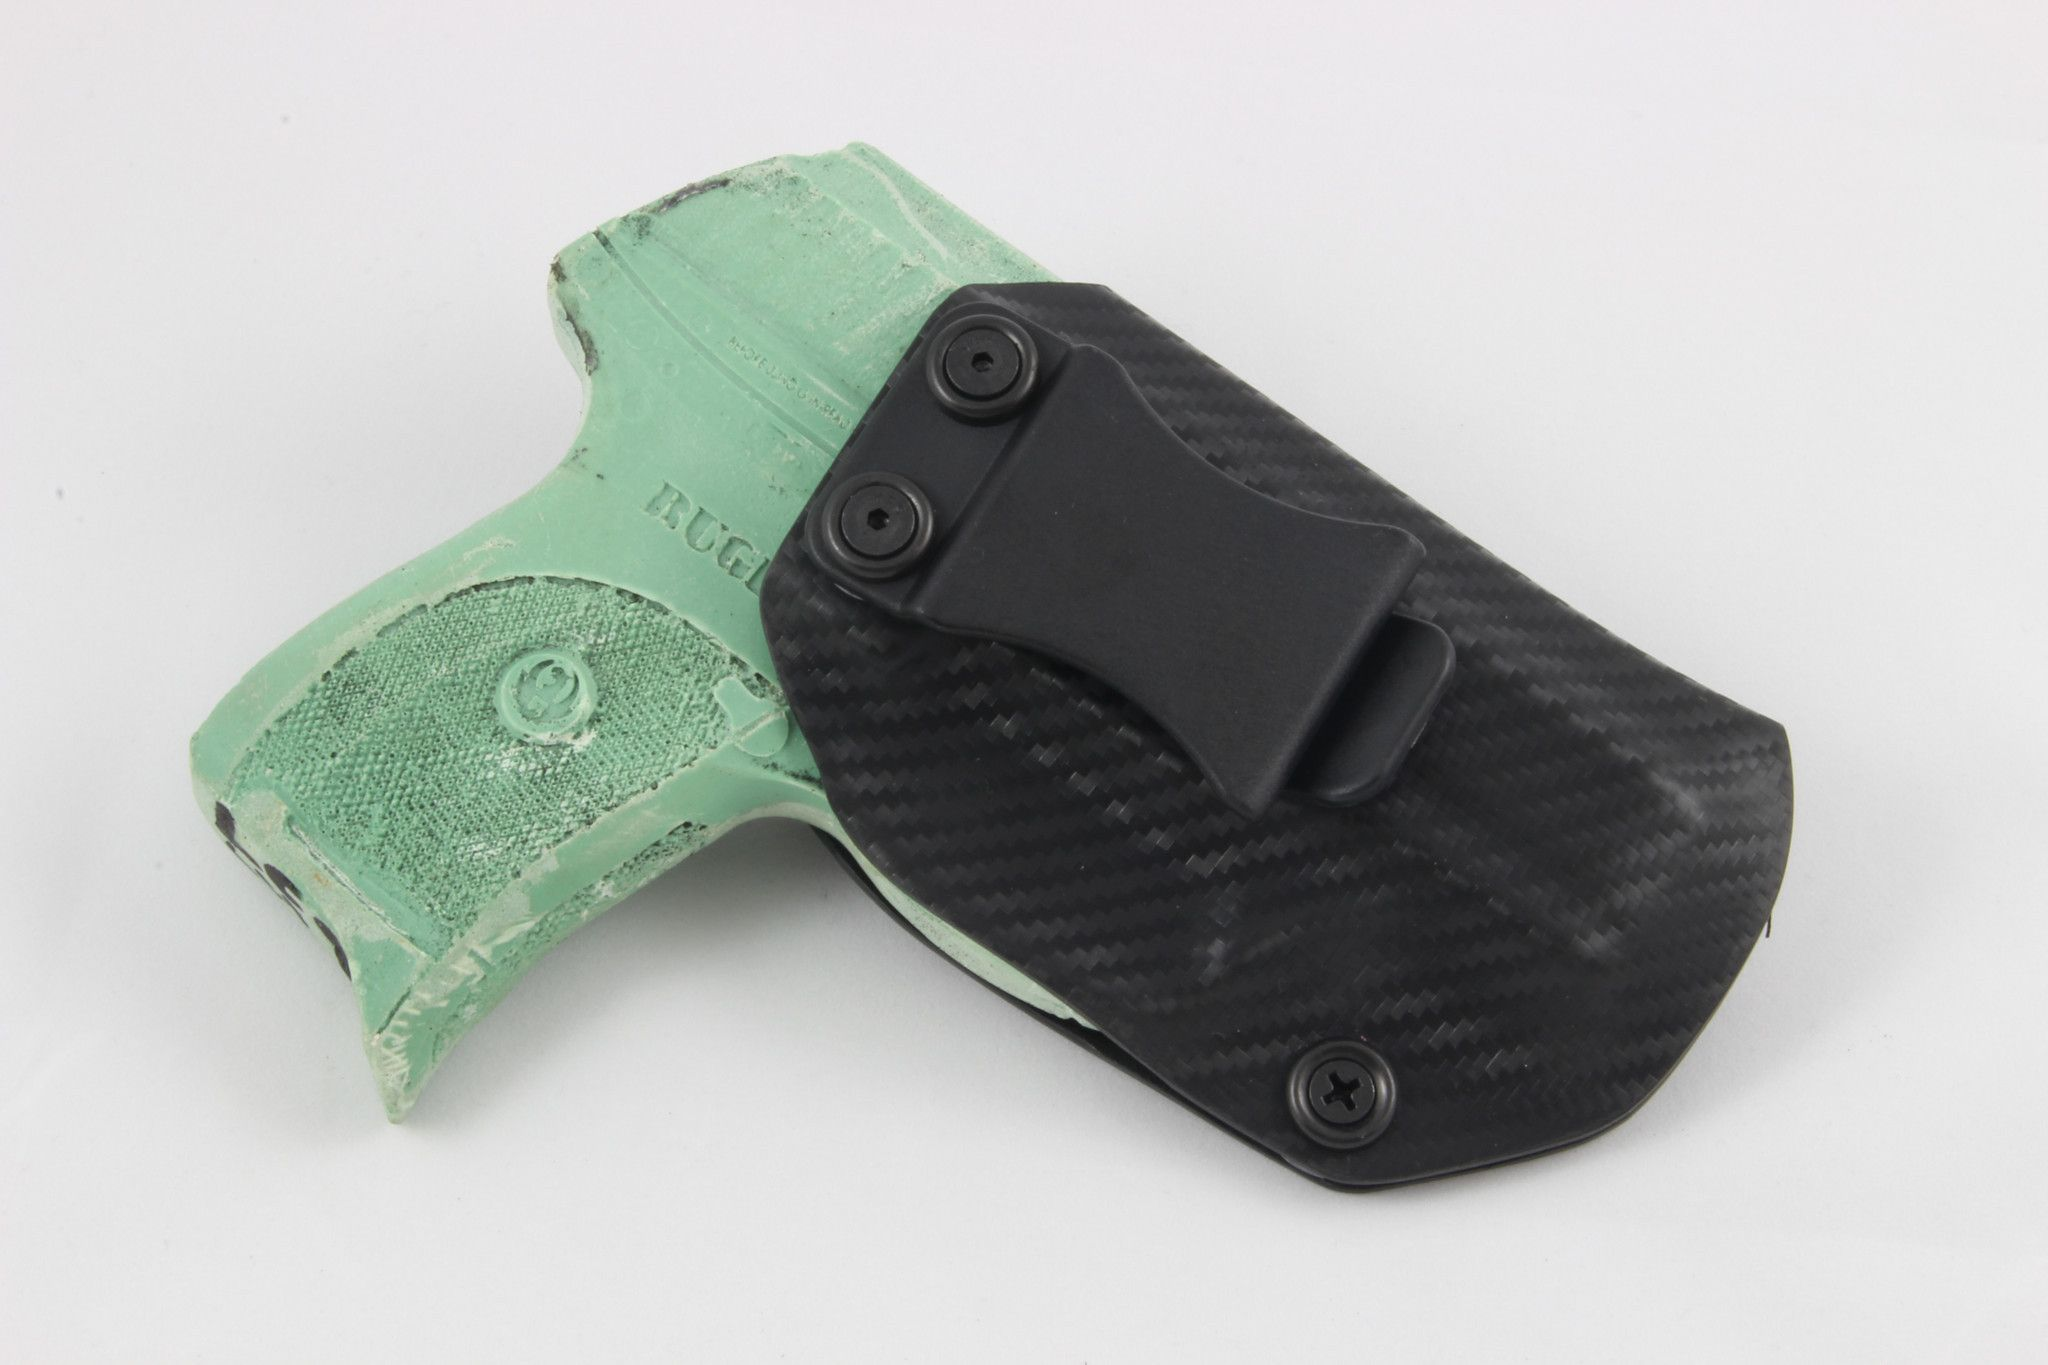 Ruger LC9/LC9s/LC380/EC9s IWB KYDEX® Holster | ruger lc380